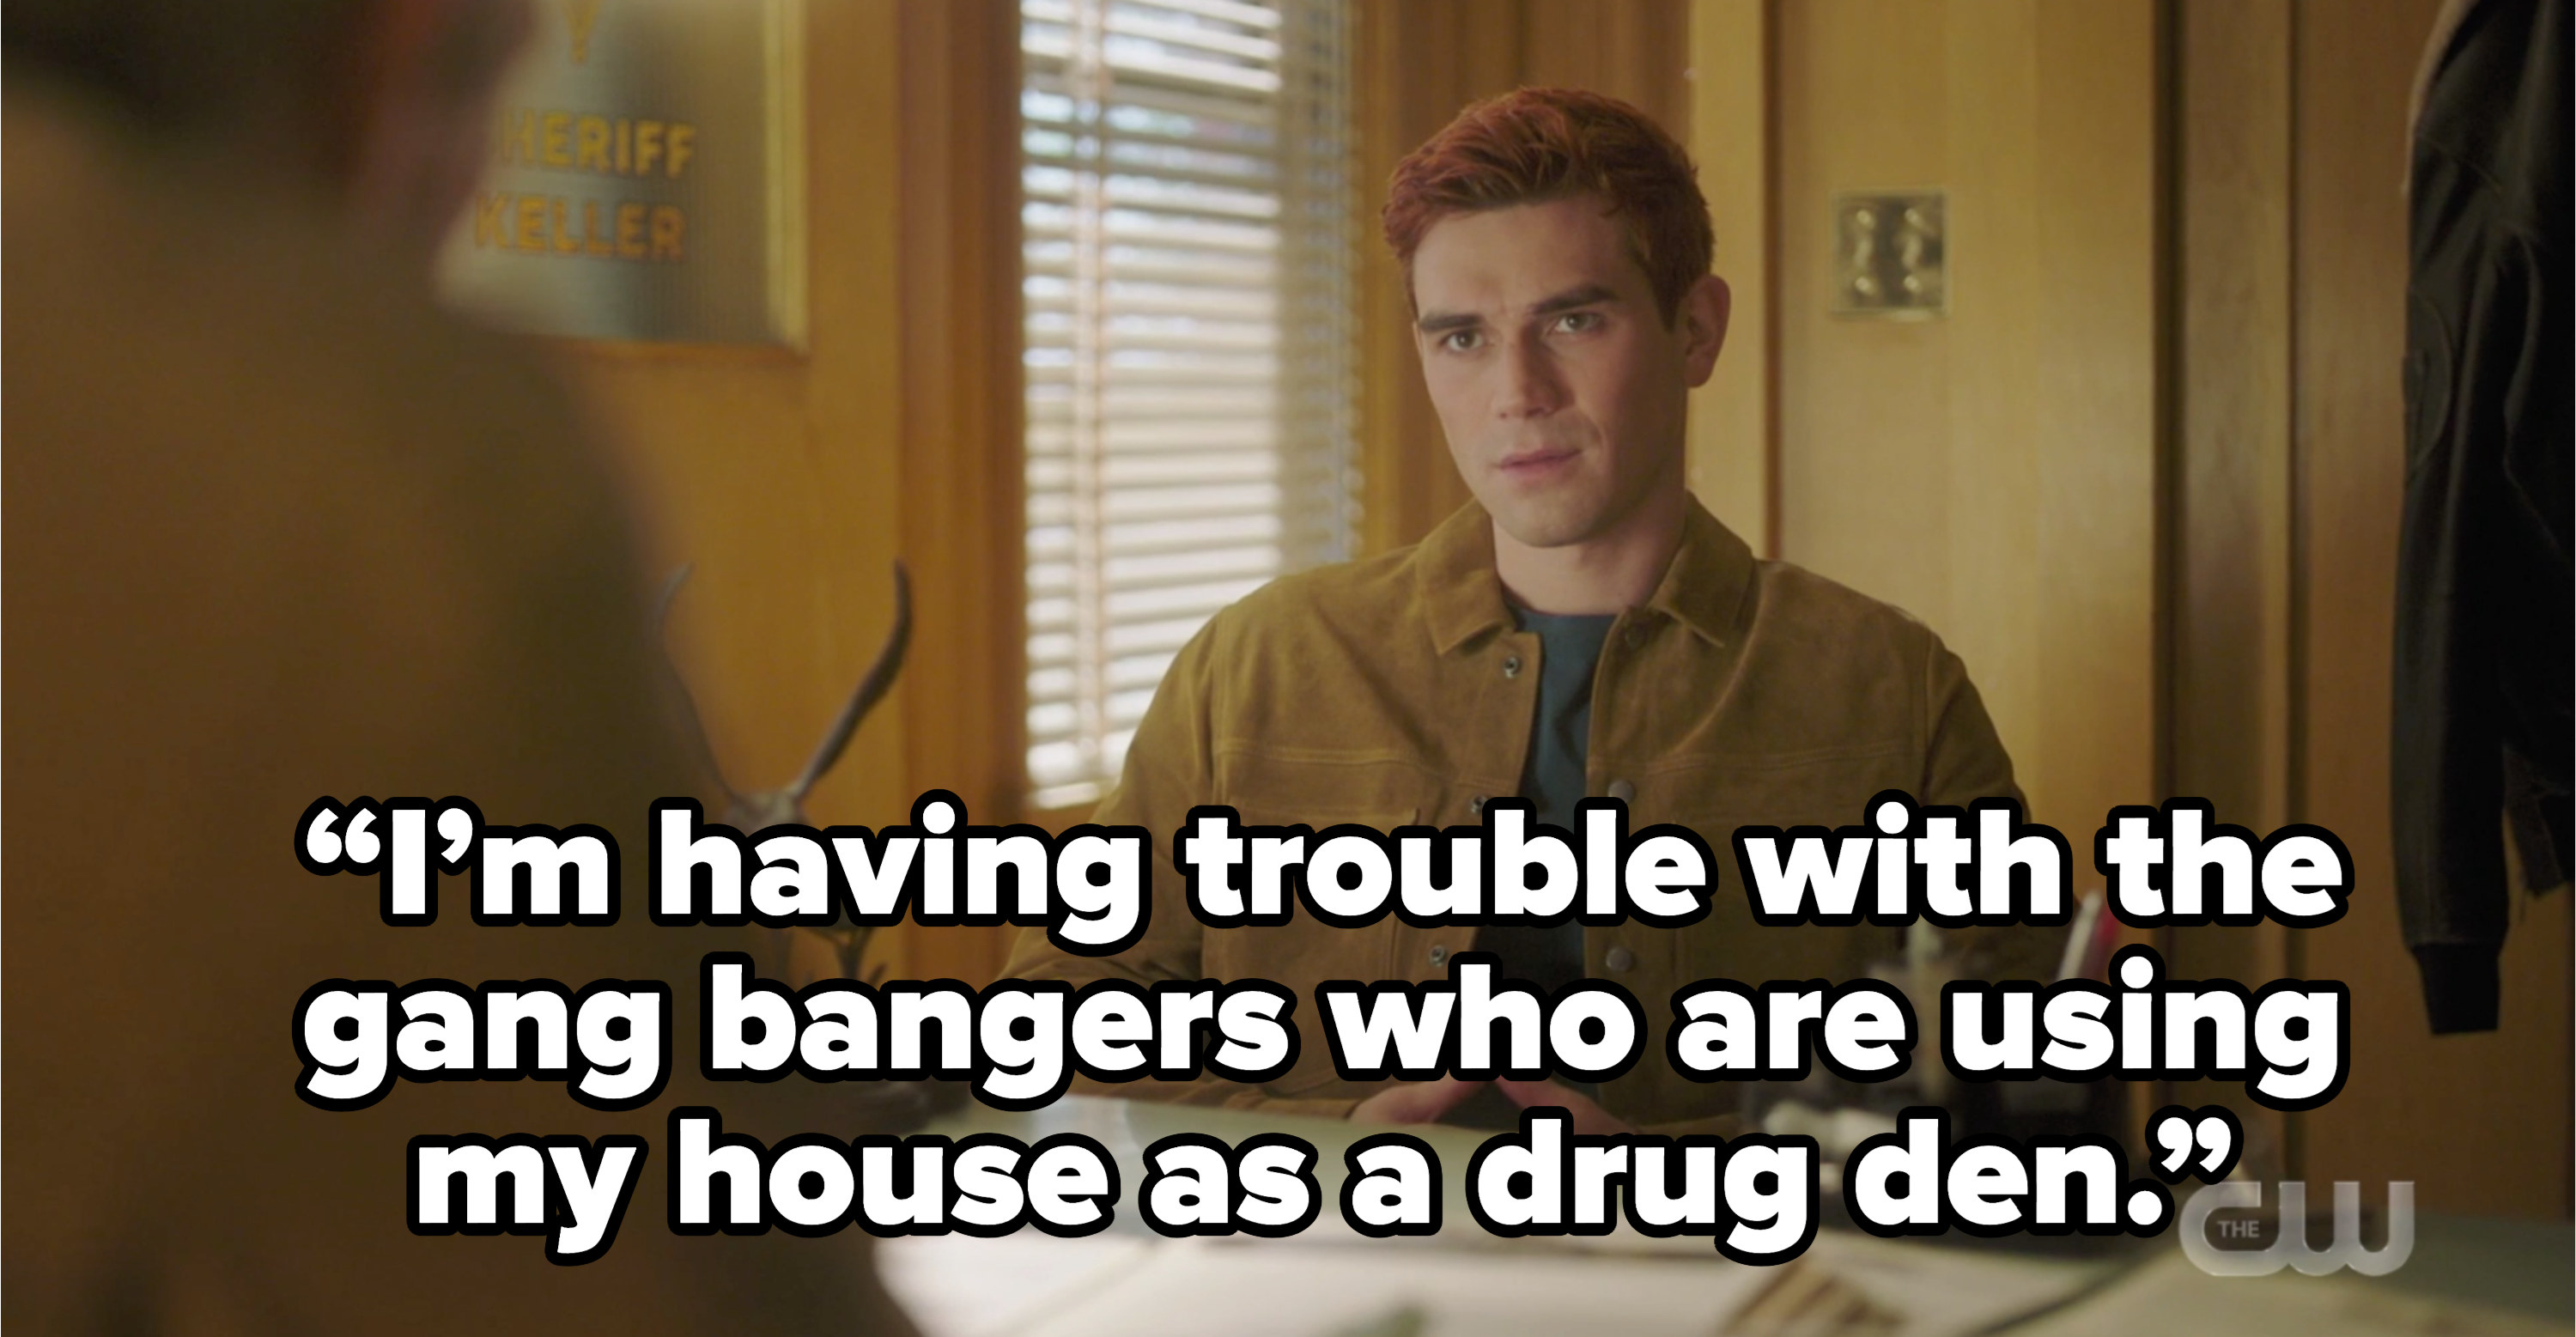 Archie saying I'm having trouble with the gang bangers who are using my house as a drug den